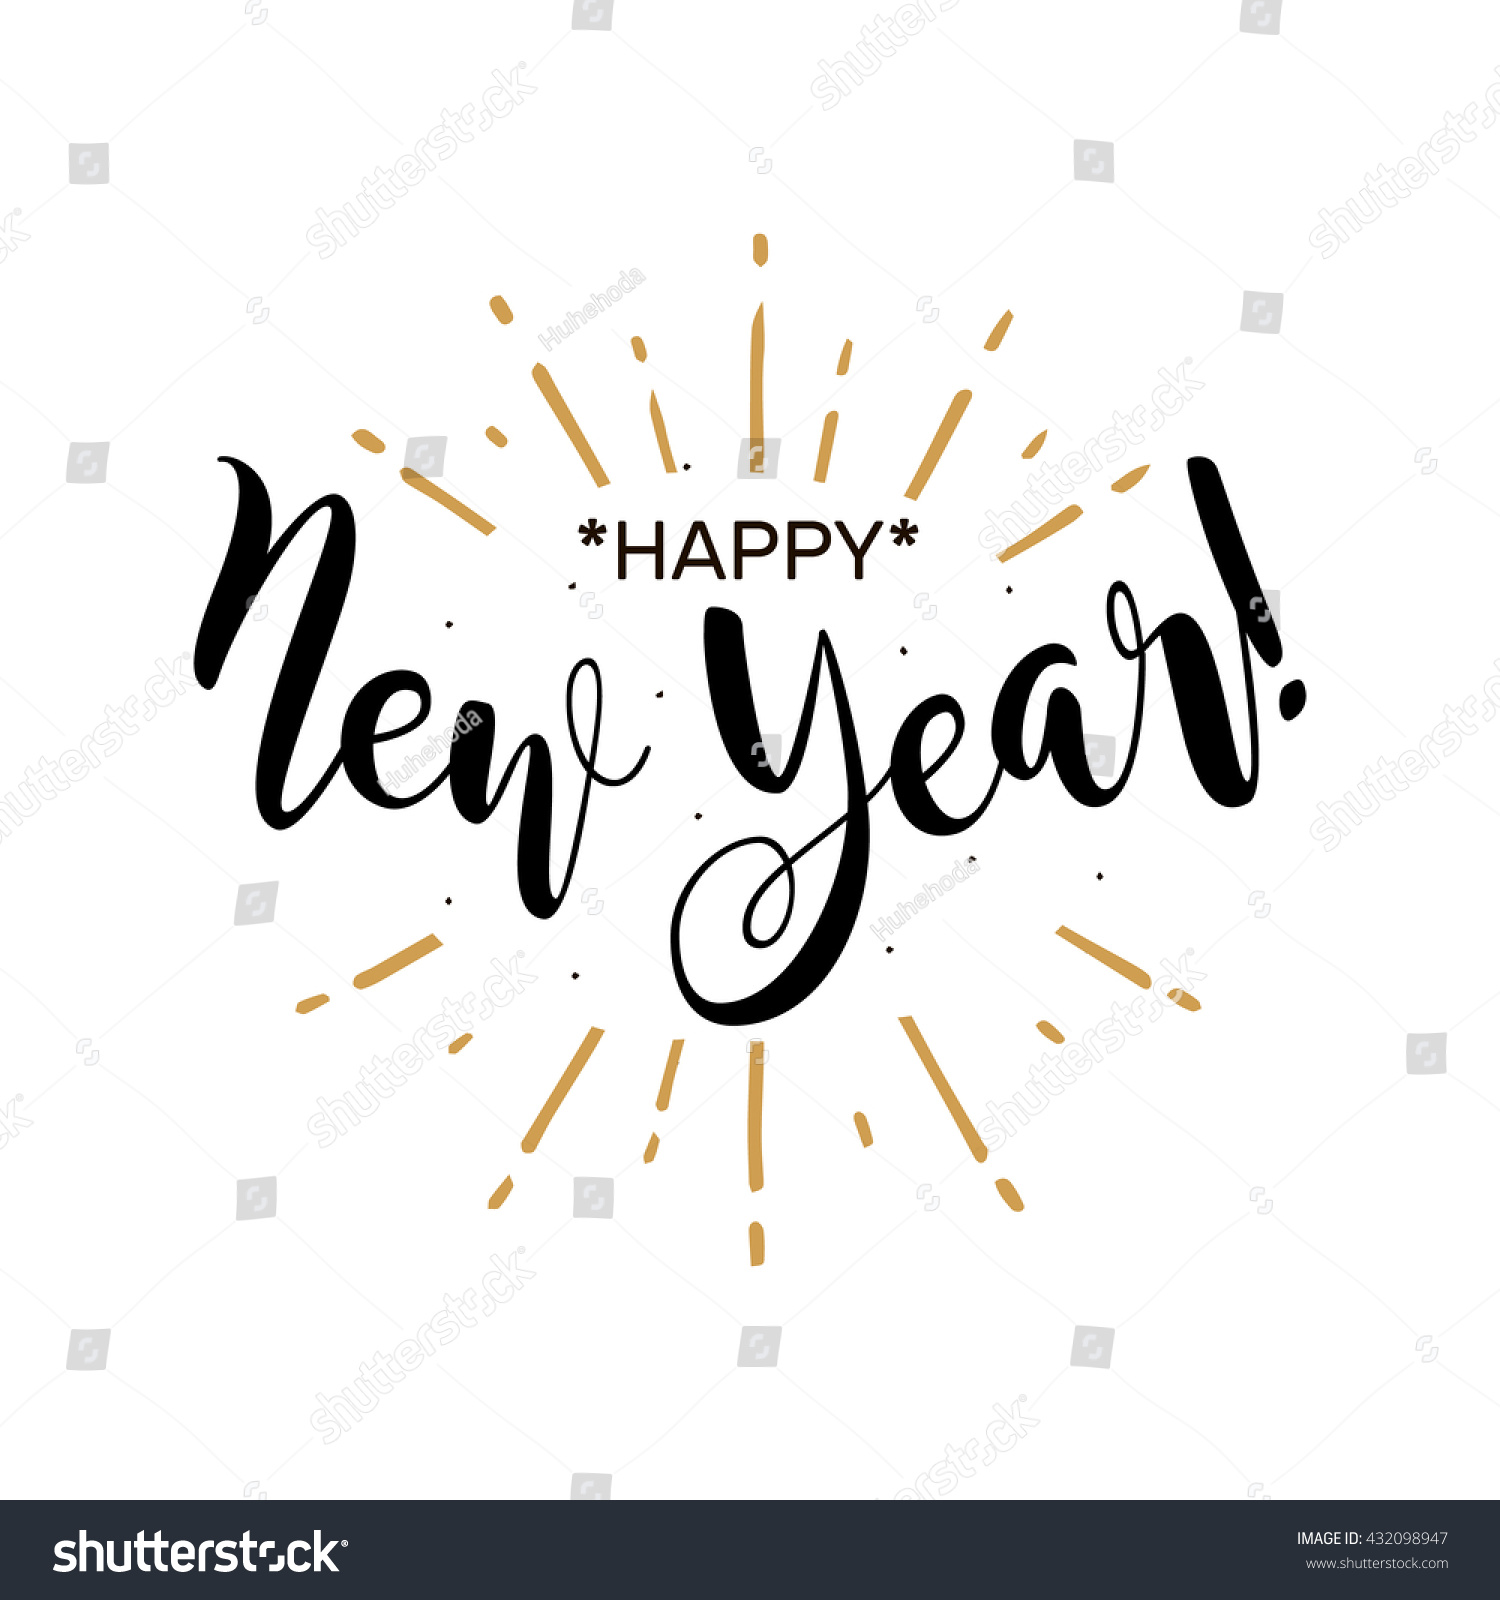 Happy New Year Beautiful Greeting Card Stock Vector (Royalty Free ...